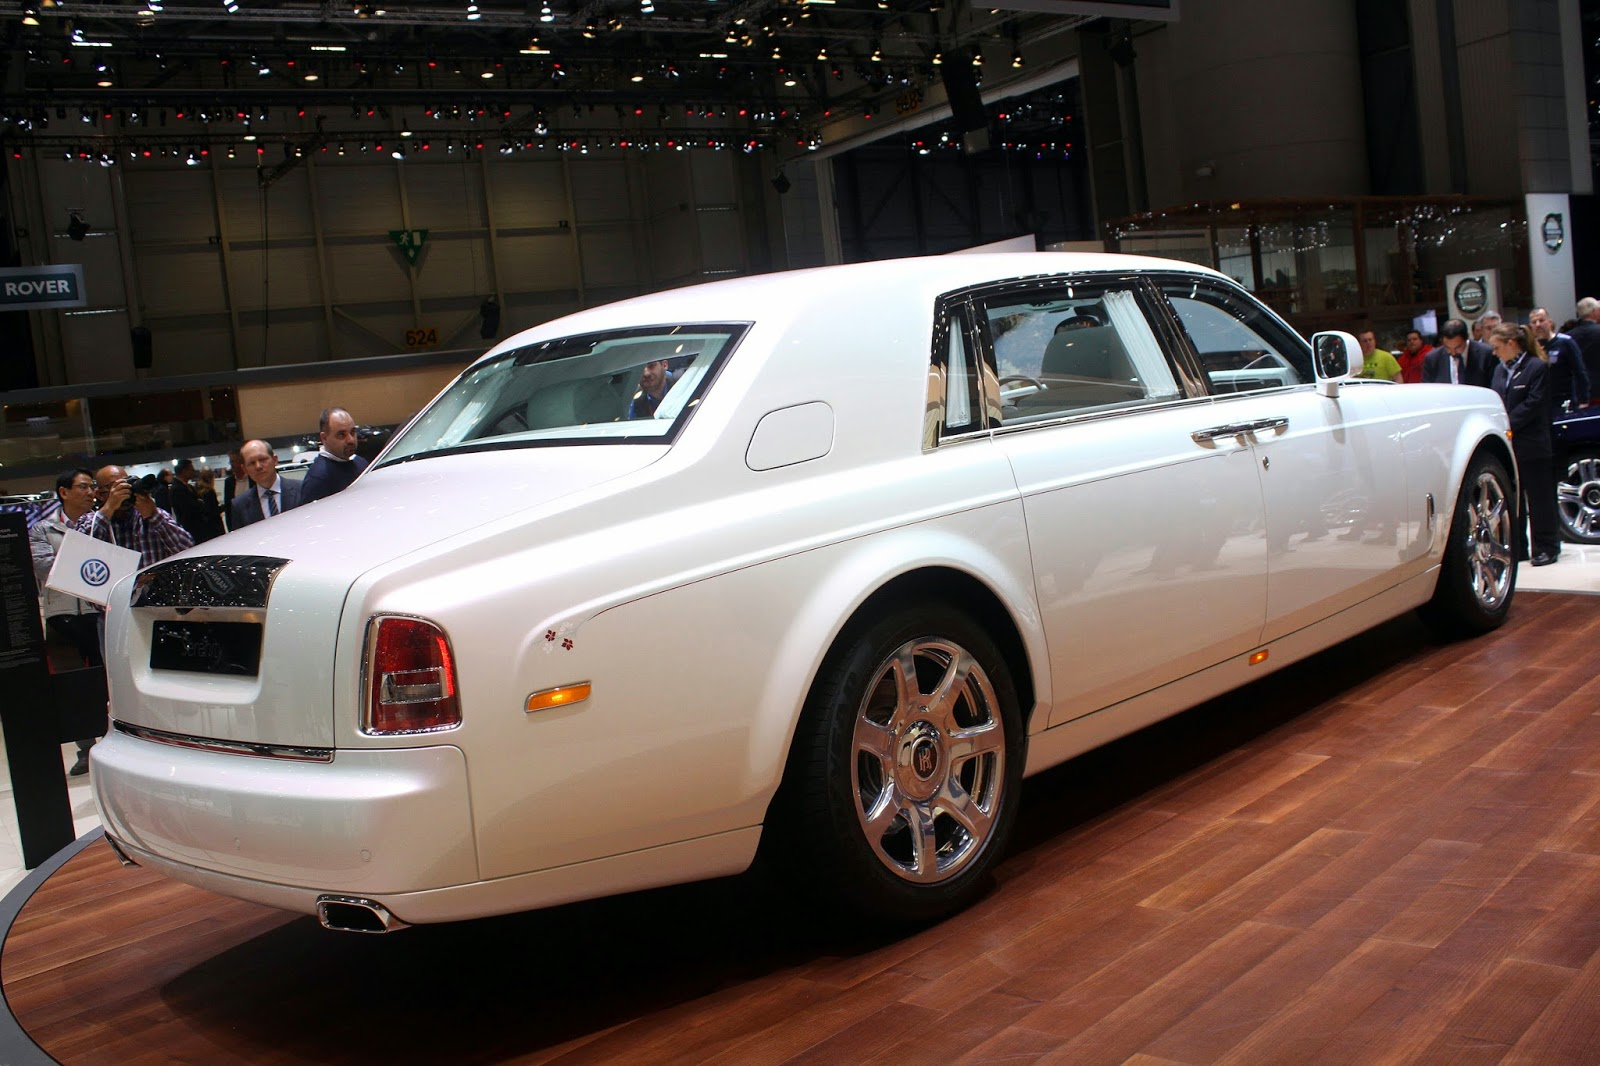 Phantom Serenity Automotiveblogz Rolls Royce Phantom Serenity Geneva 2015